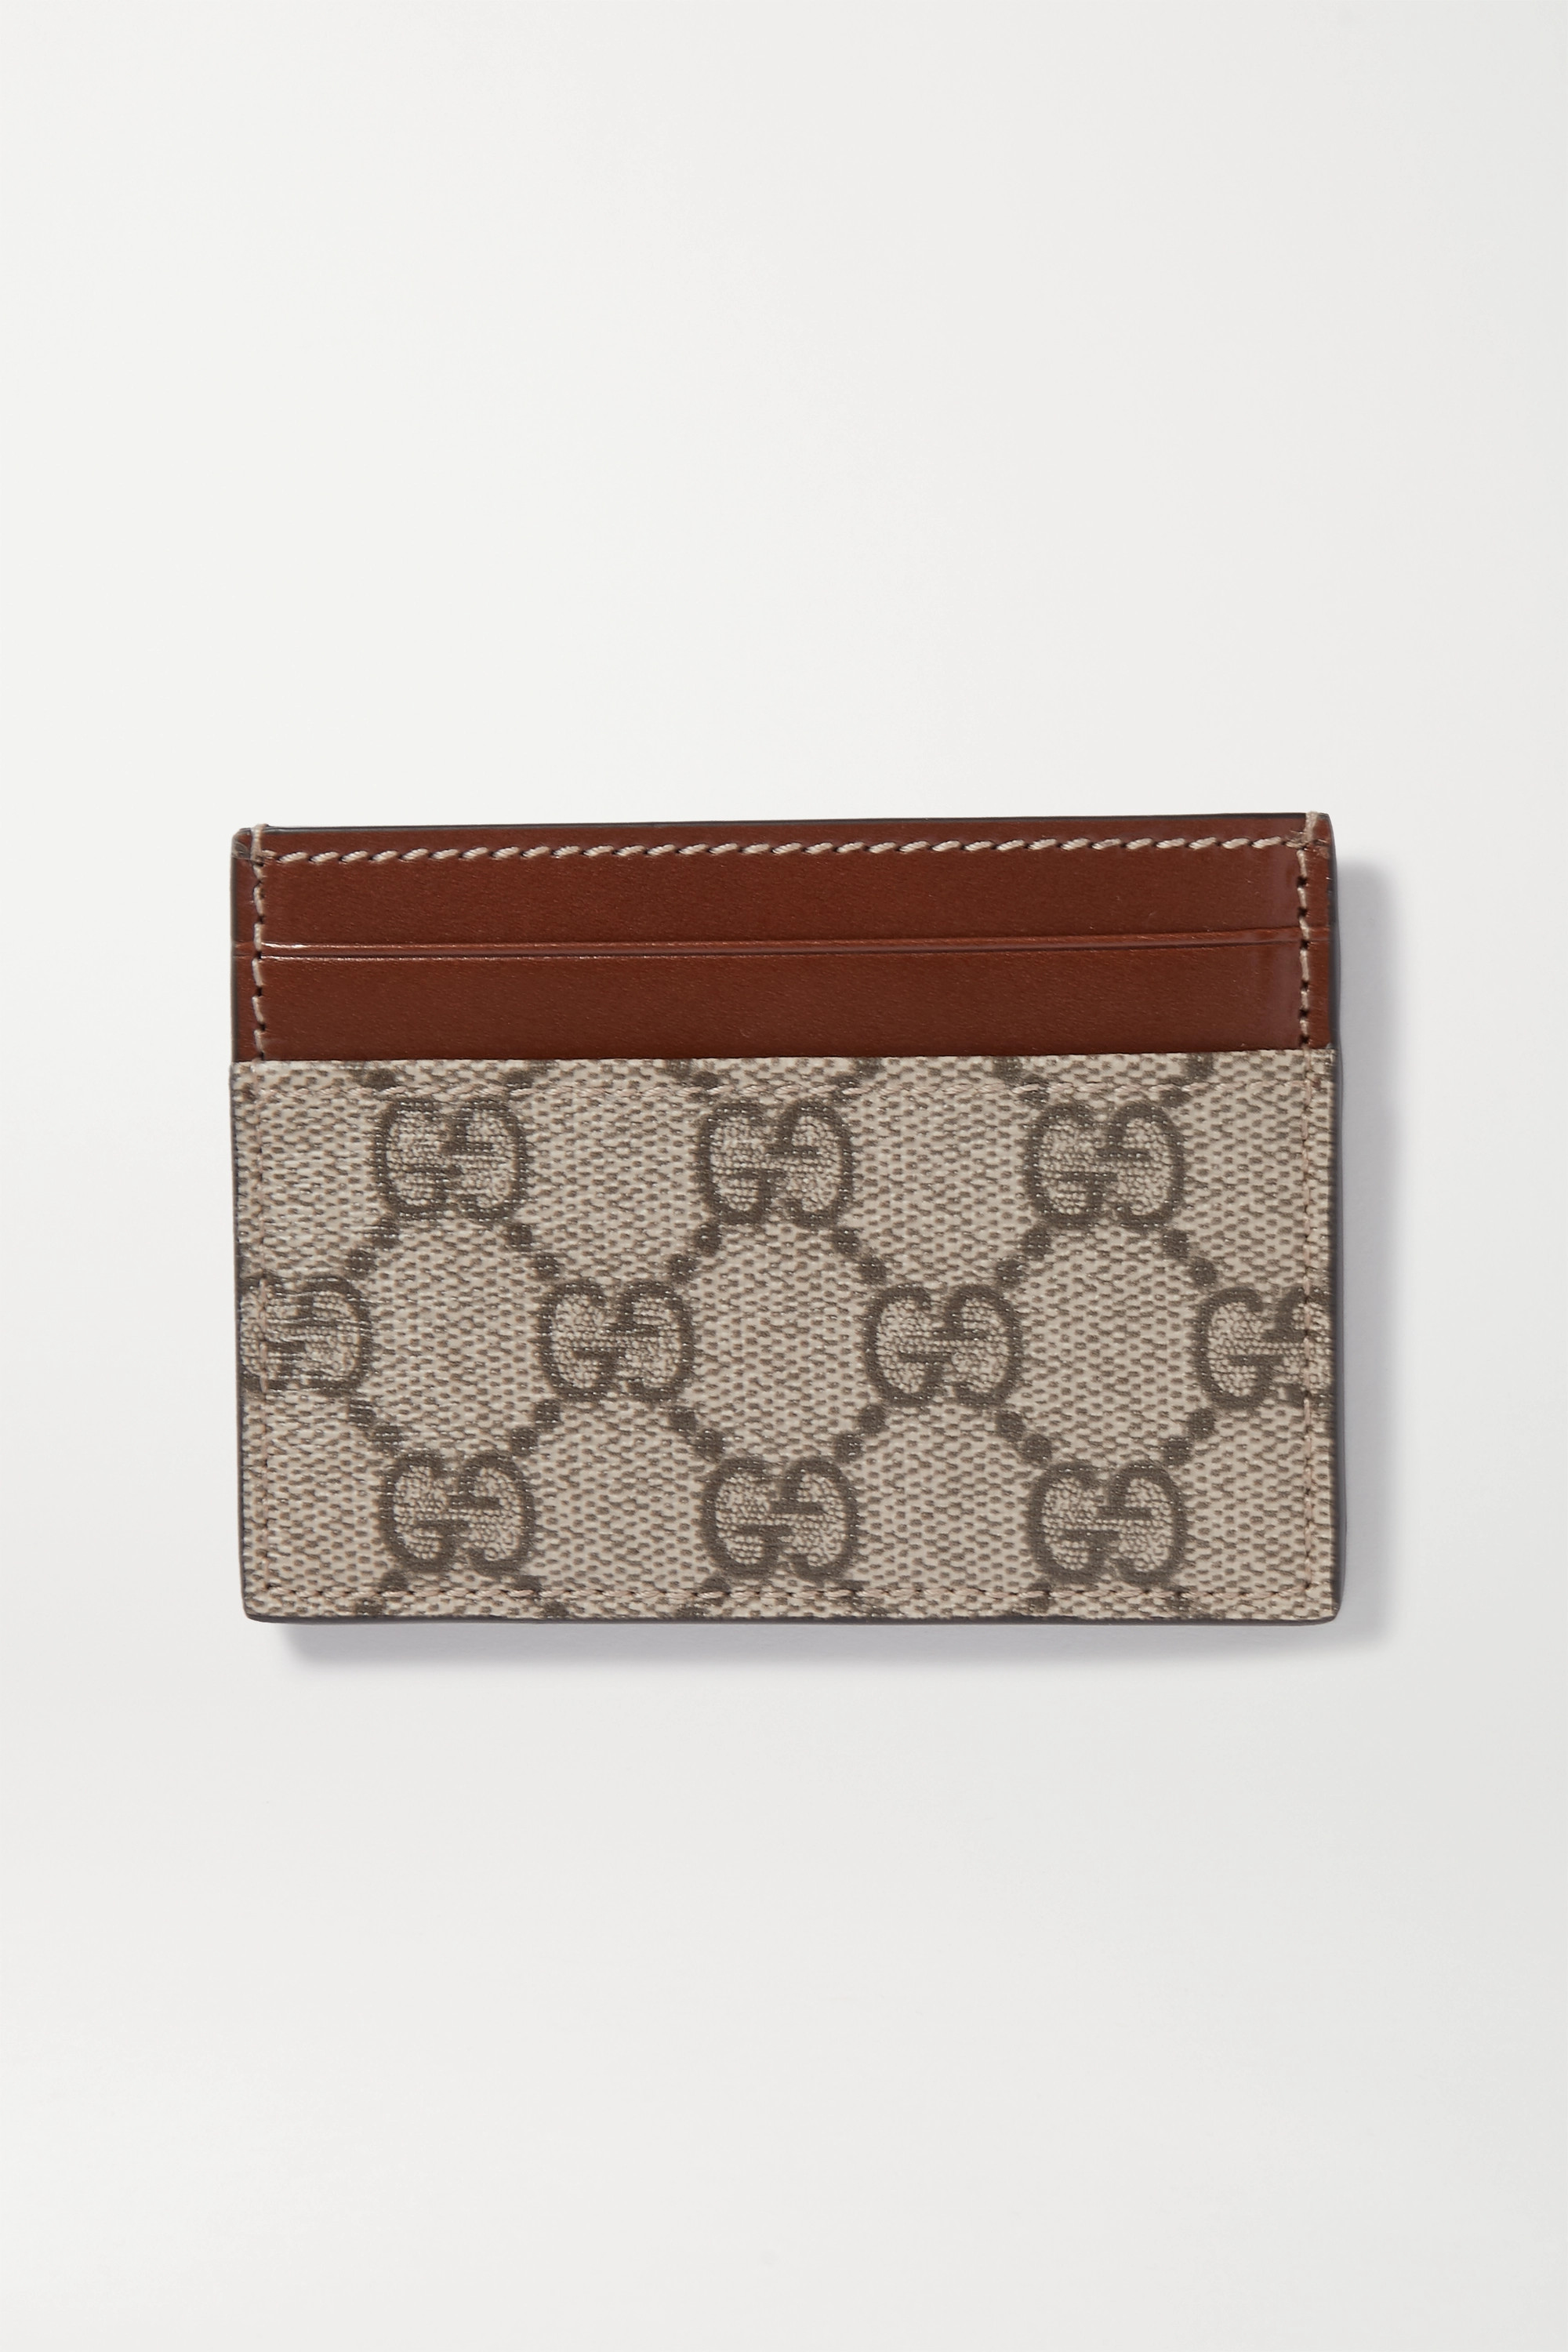 Gucci Linea leather-trimmed printed coated-canvas cardholder